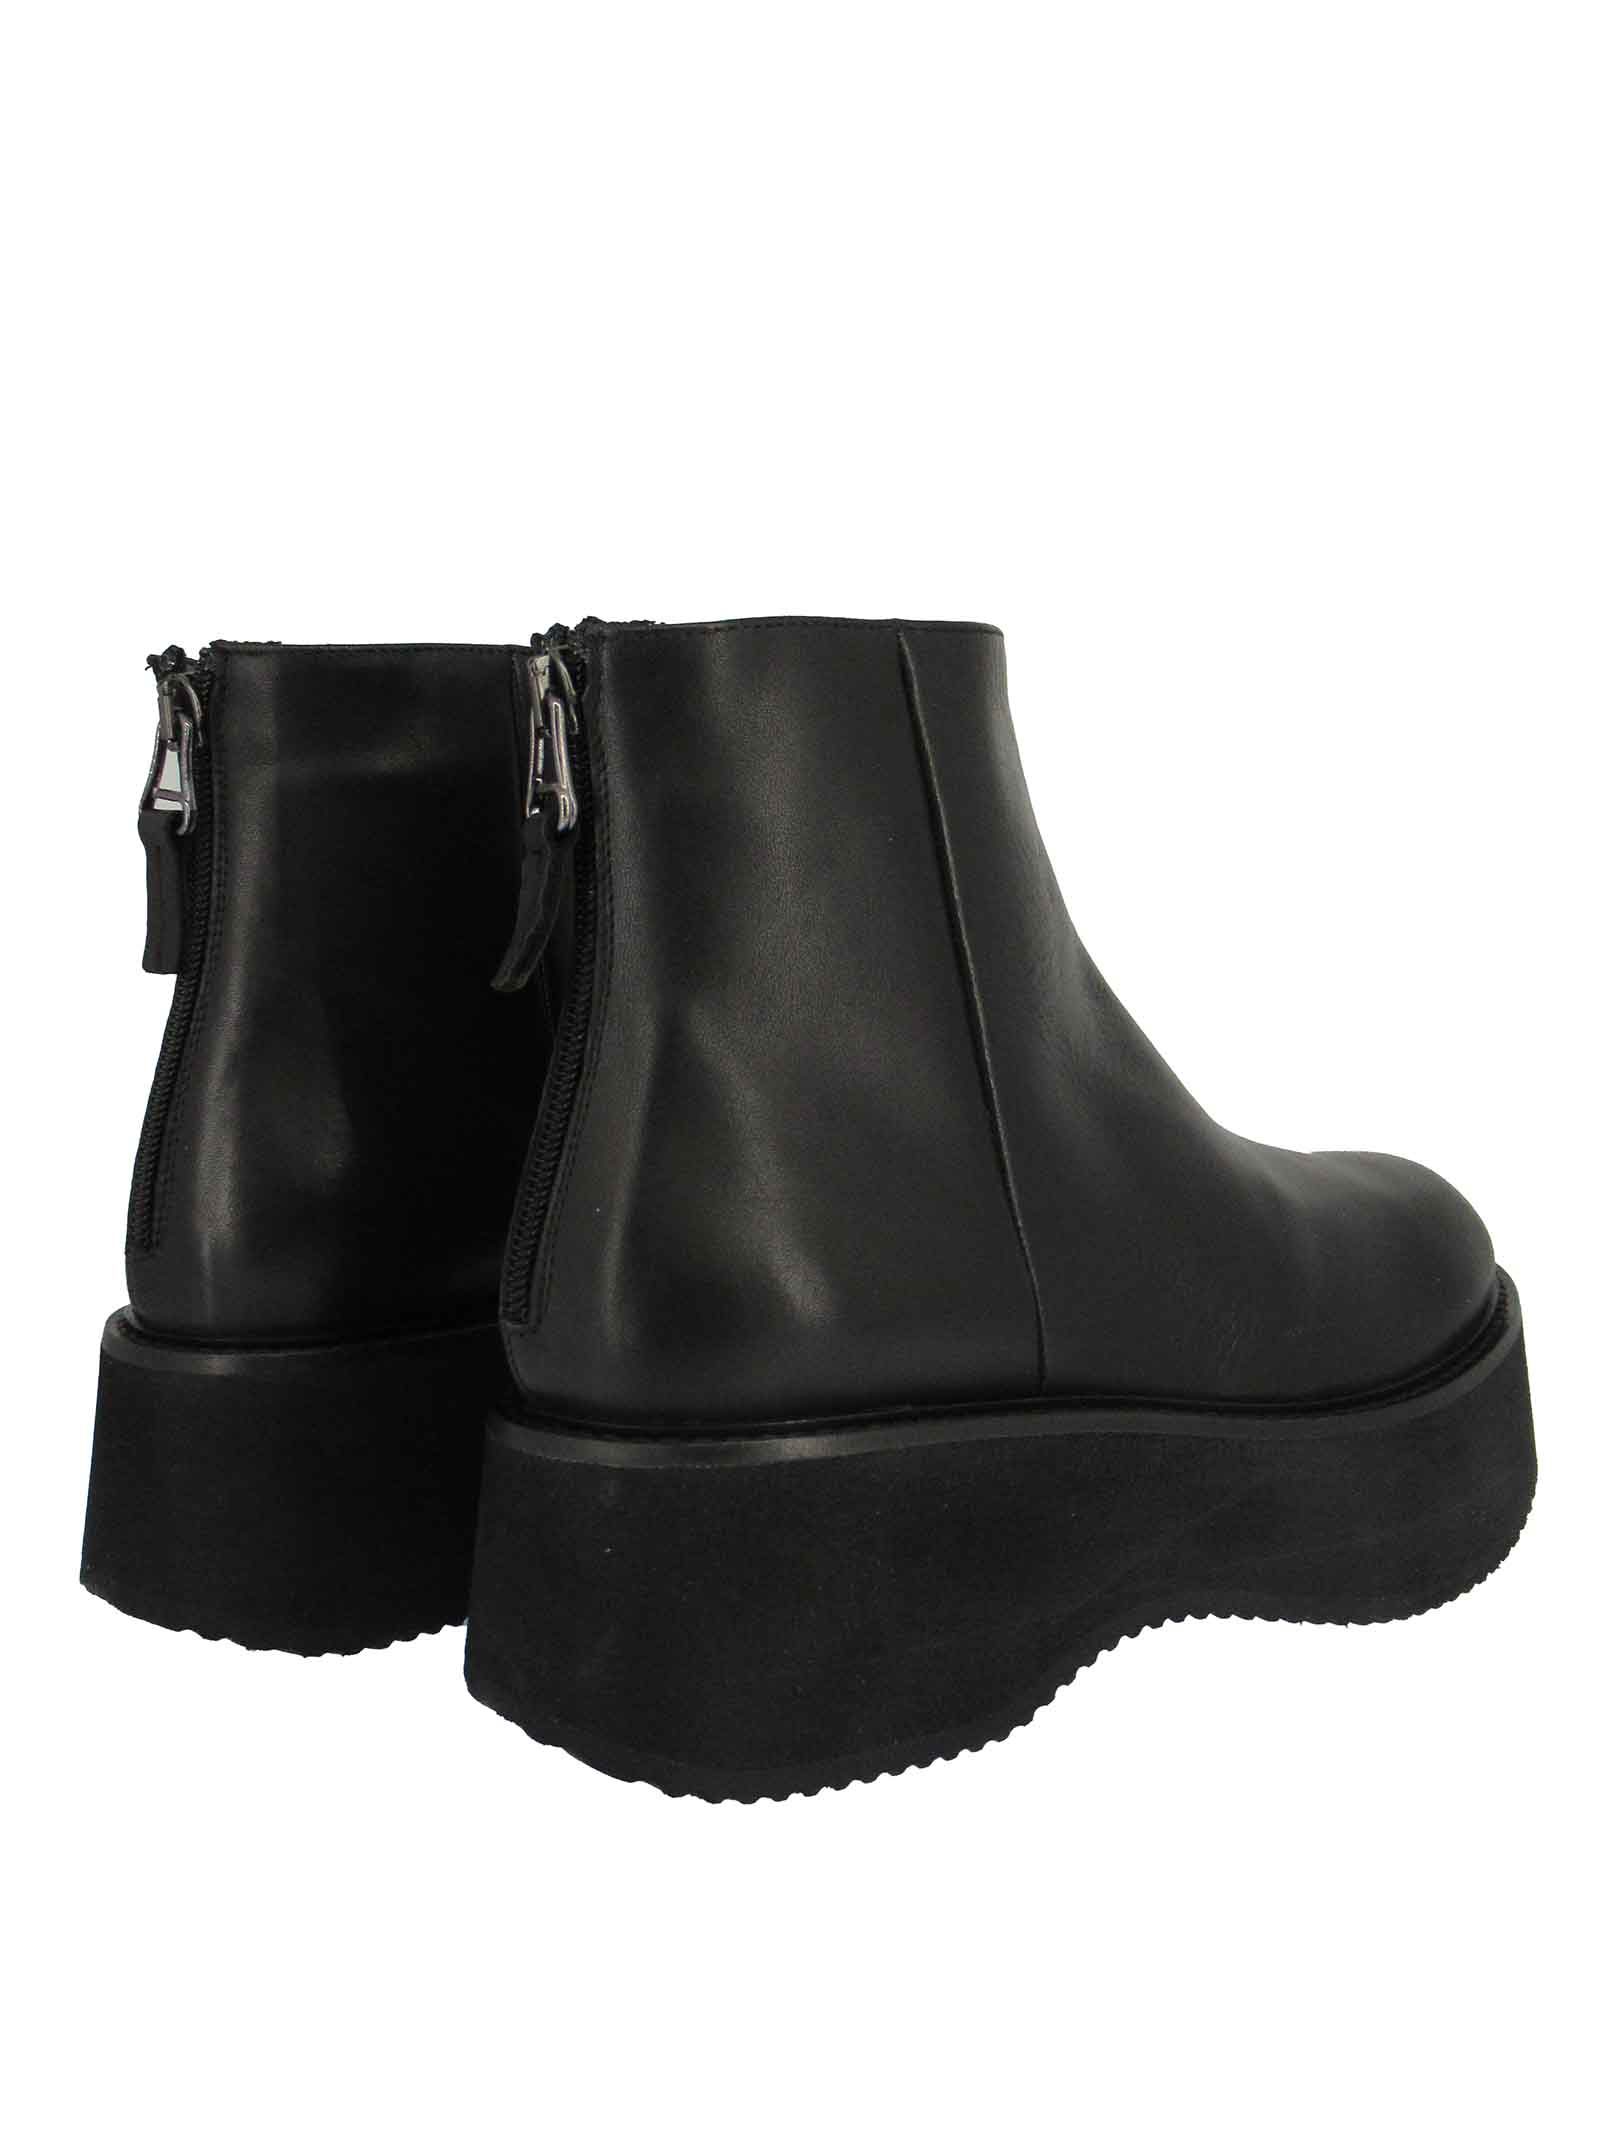 Women's Shoes Ankle Boots in Black Leather with Zip Fastening and Micro Ultra Light sole Tattoo   Ankle Boots   PAM12001